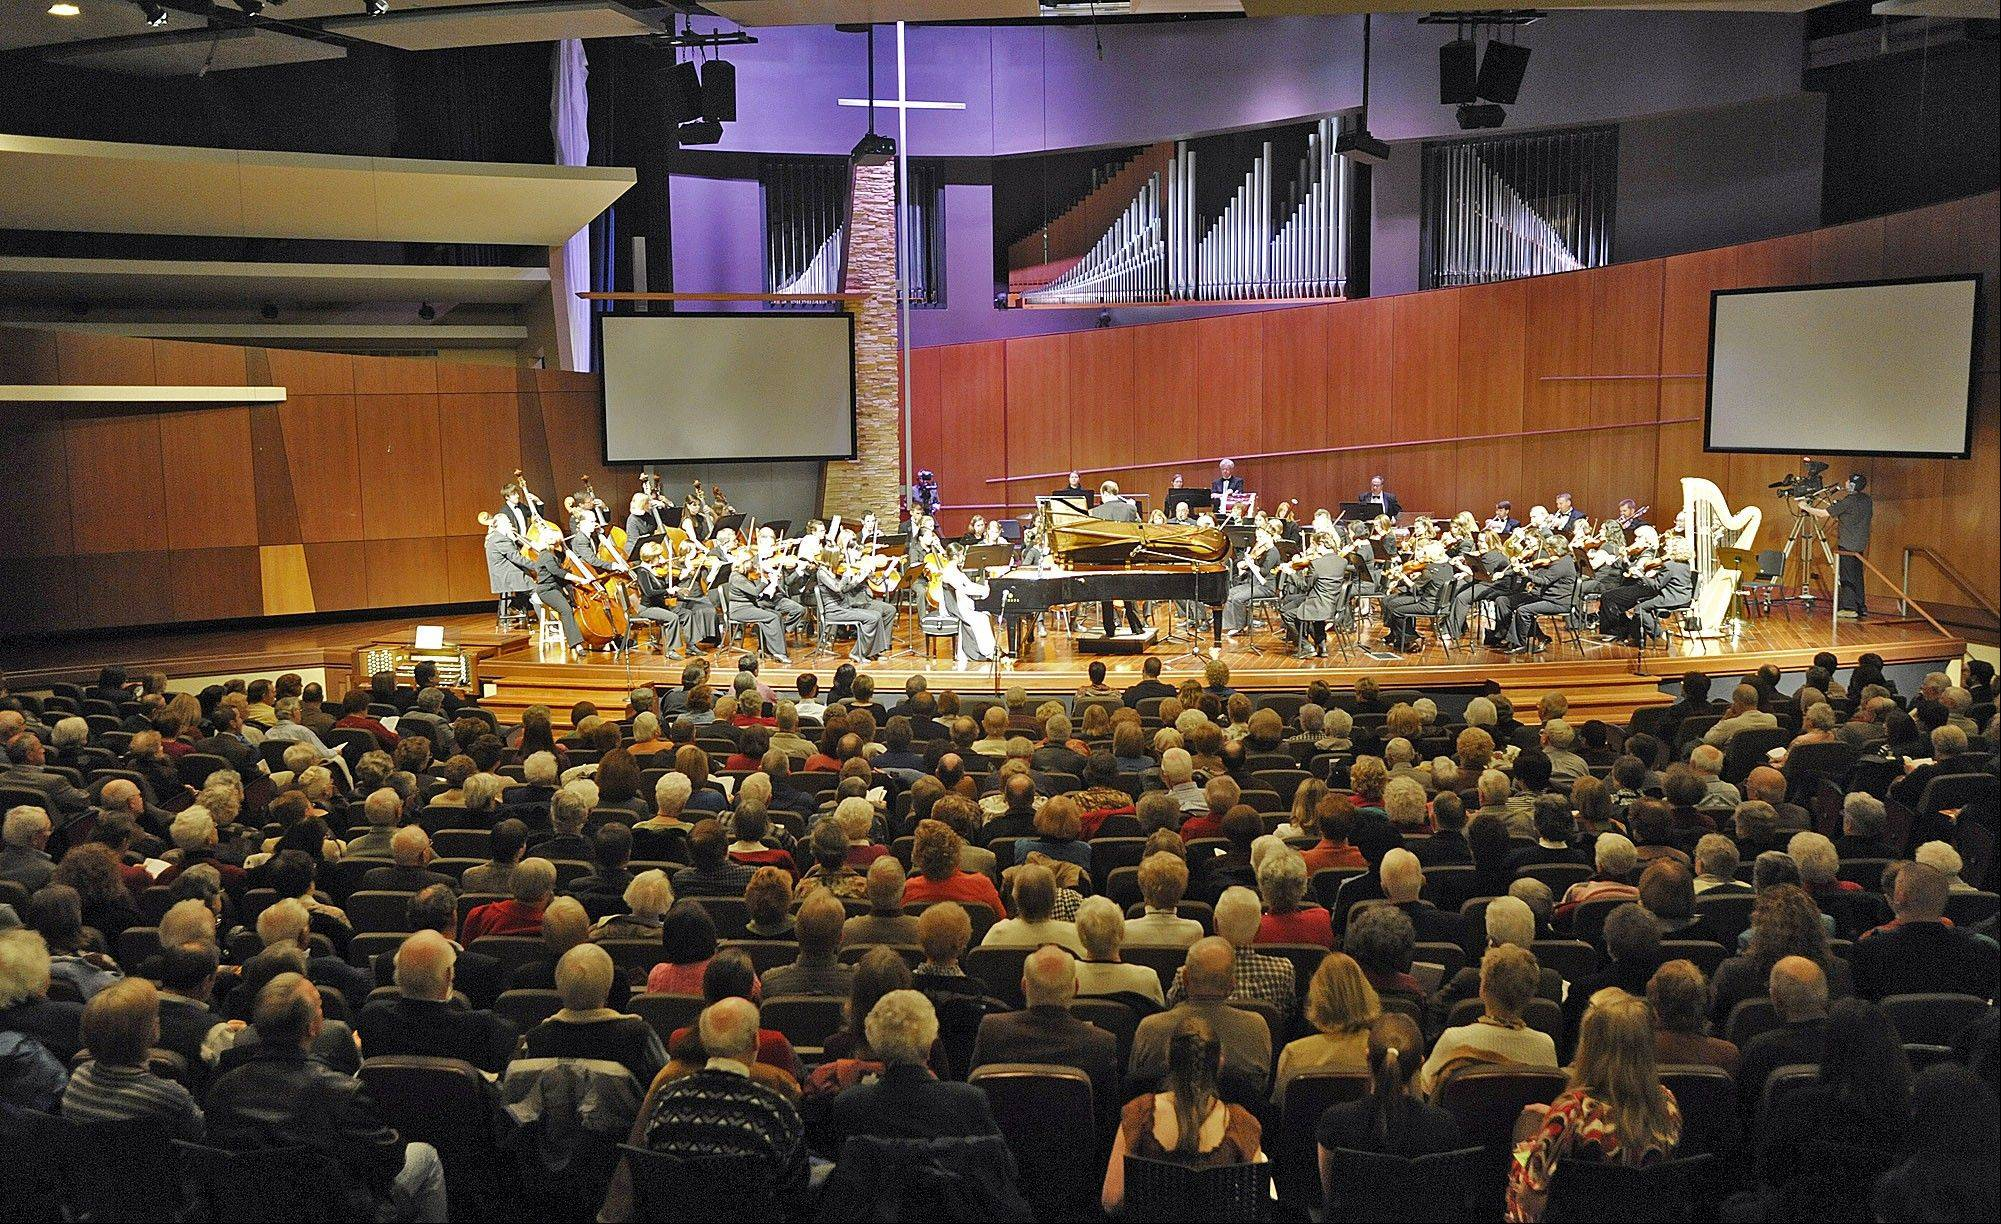 The Elmhurst Symphony Orchestra has a total budget of about $270,000, including about $22,000 from a community grant from the city of Elmhurst. The orchestra is pictured in a past performance at The Elmhurst Christian Reformed Church.